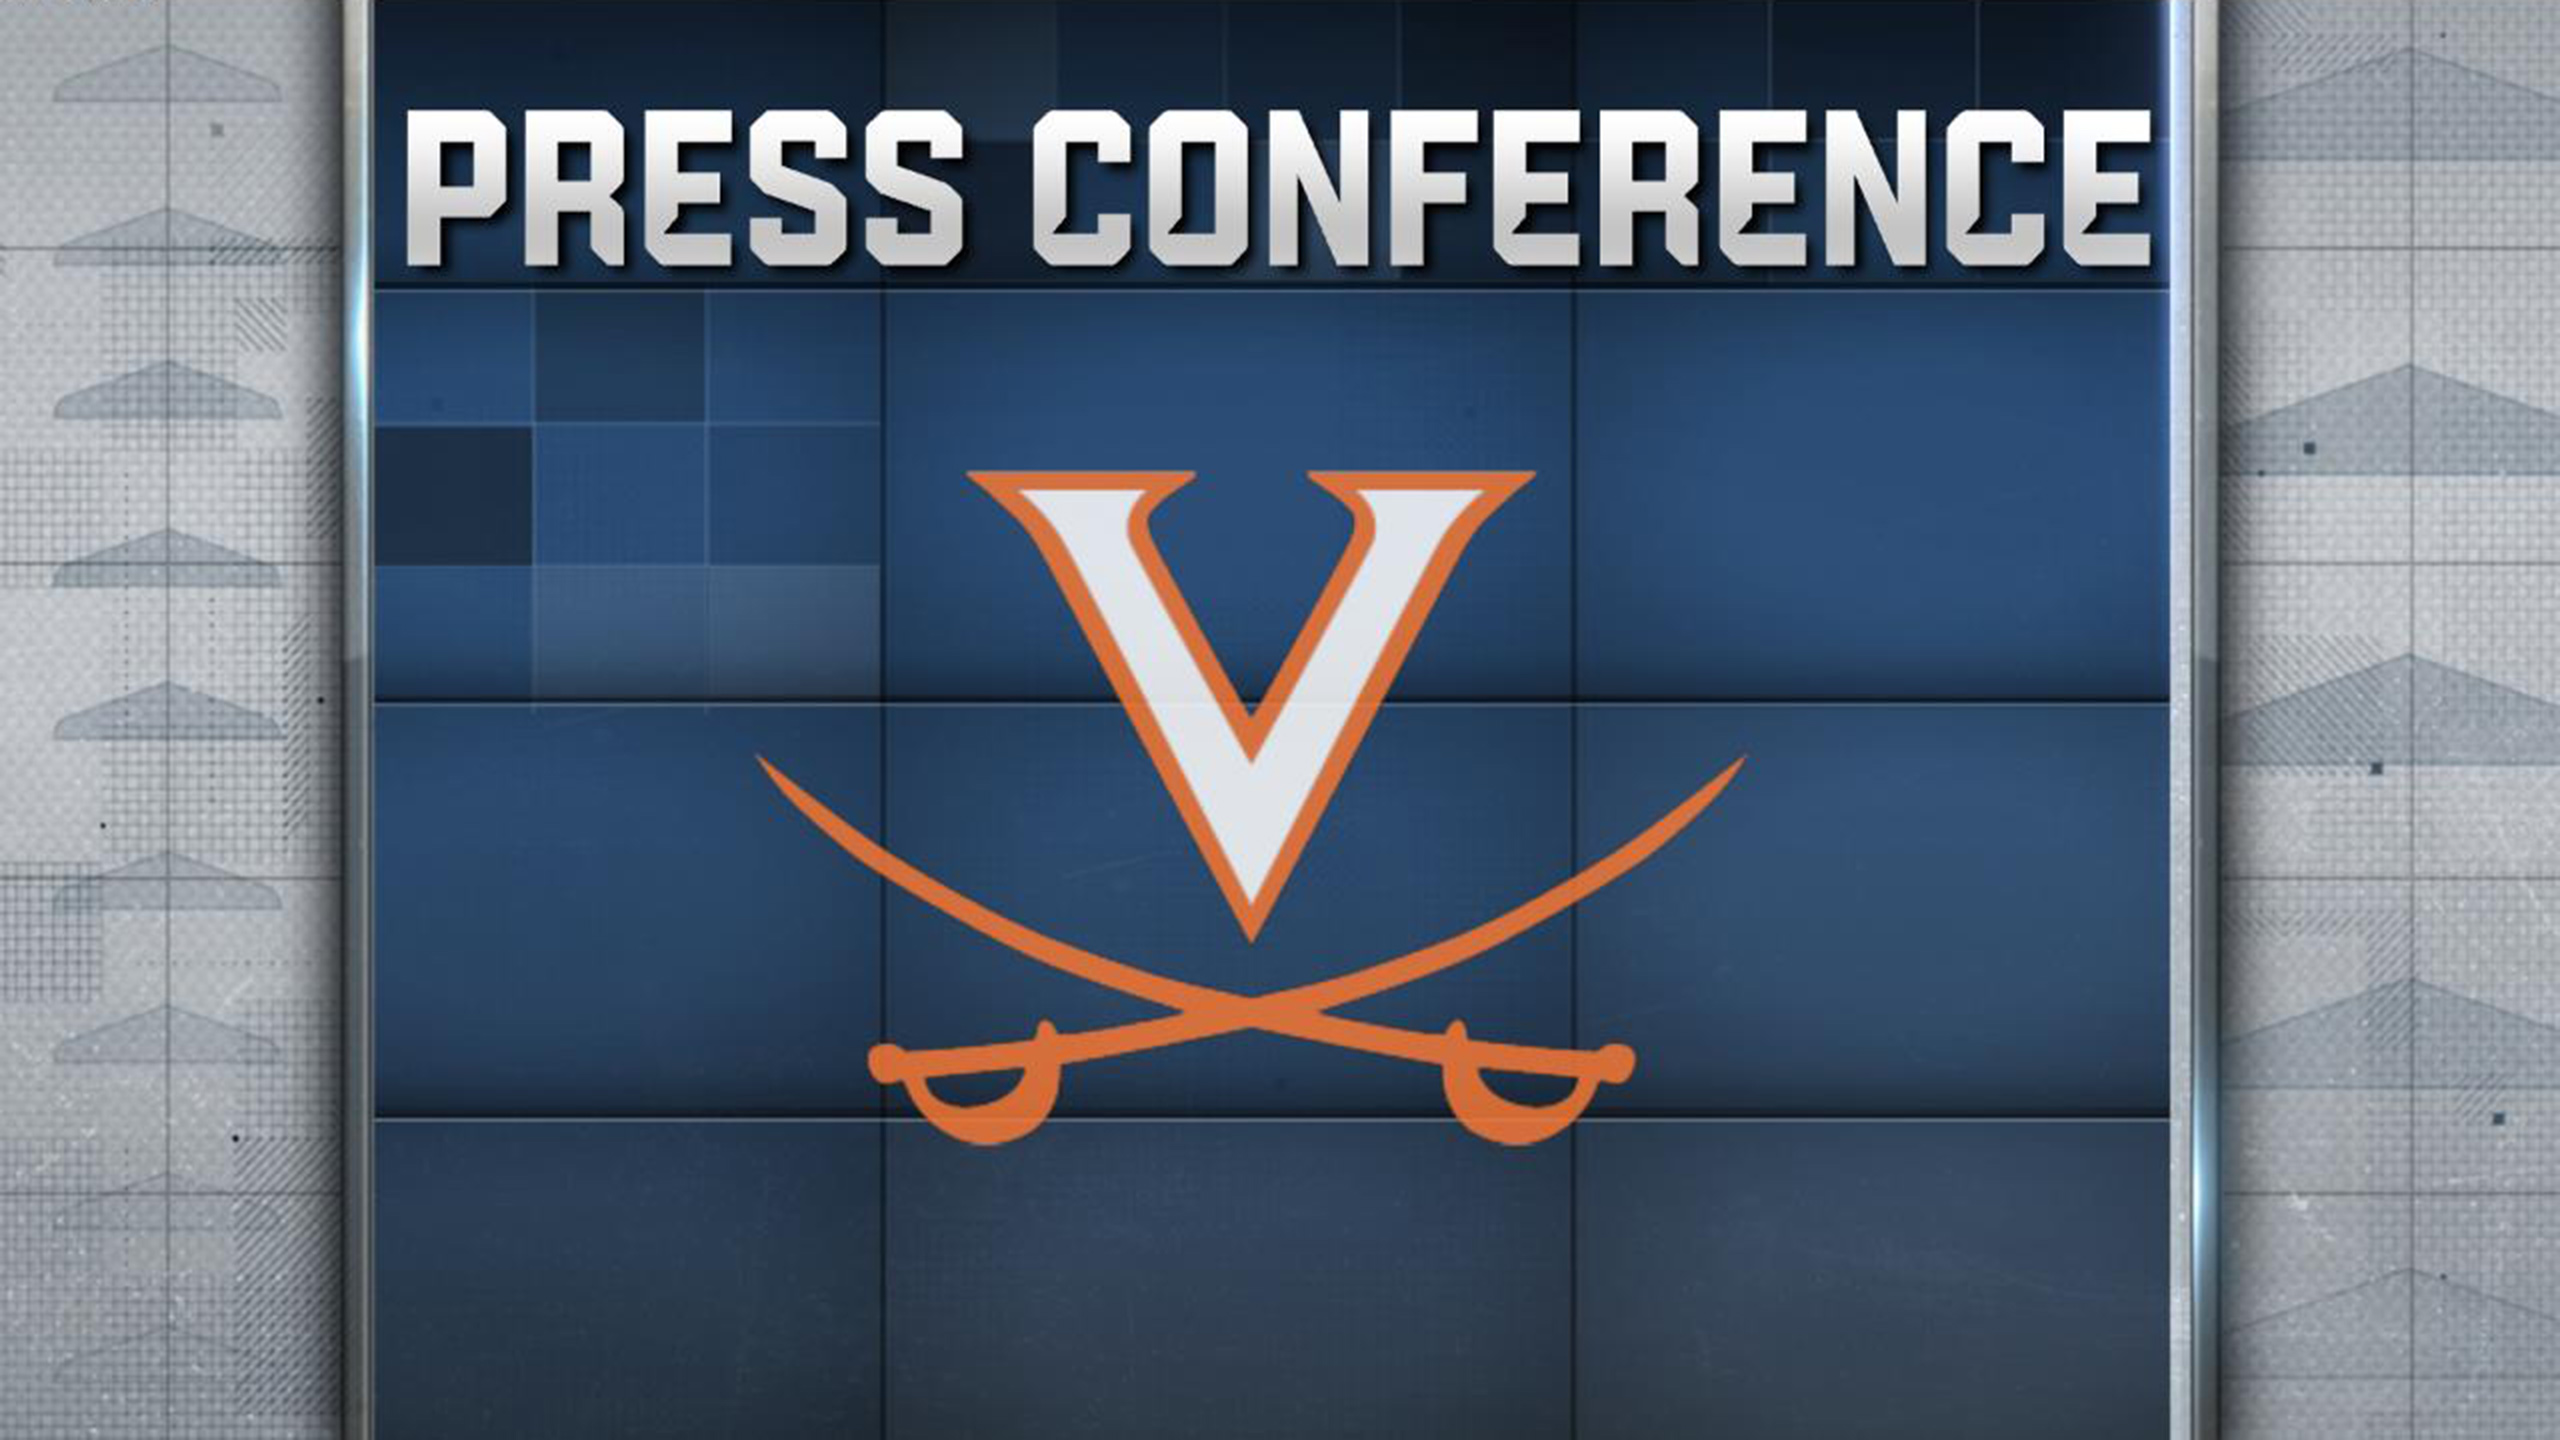 Virginia Football Press Conference